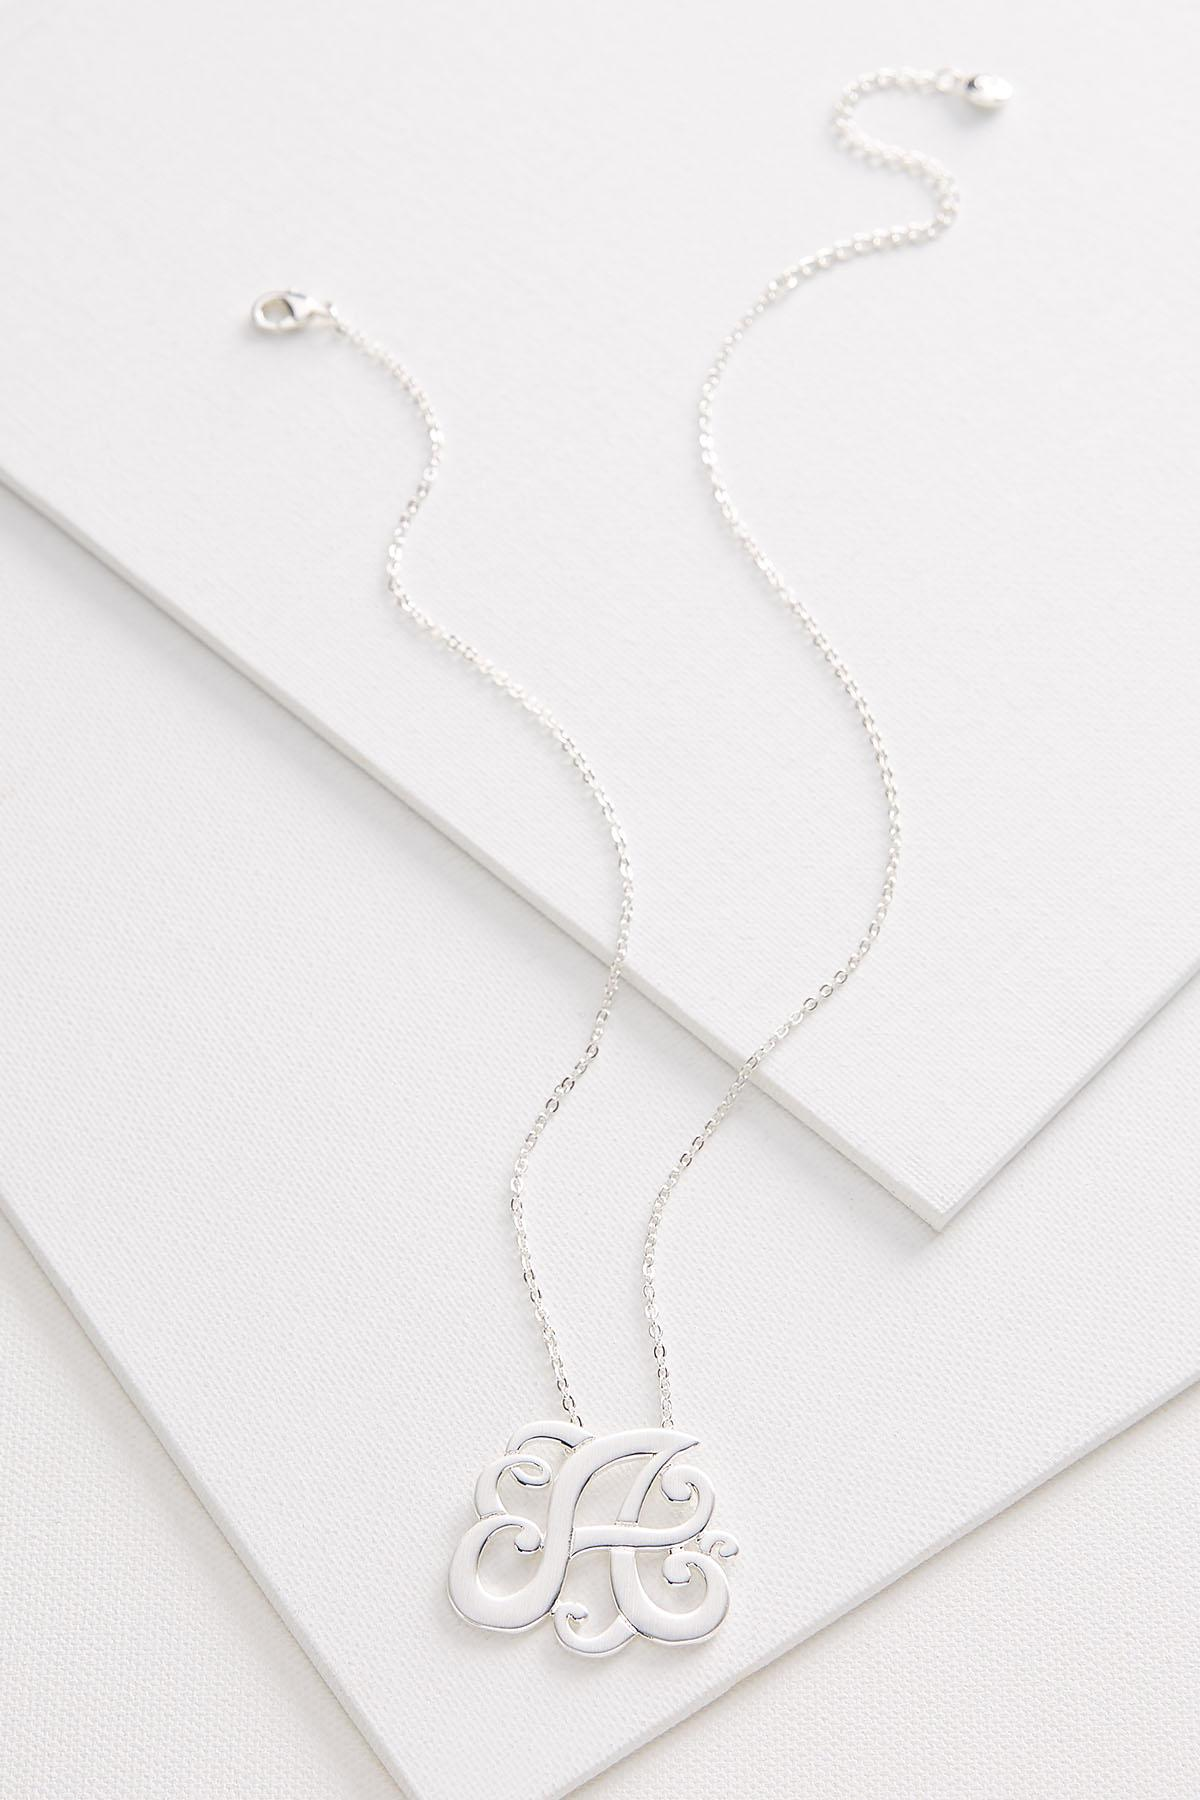 A Scroll Necklace